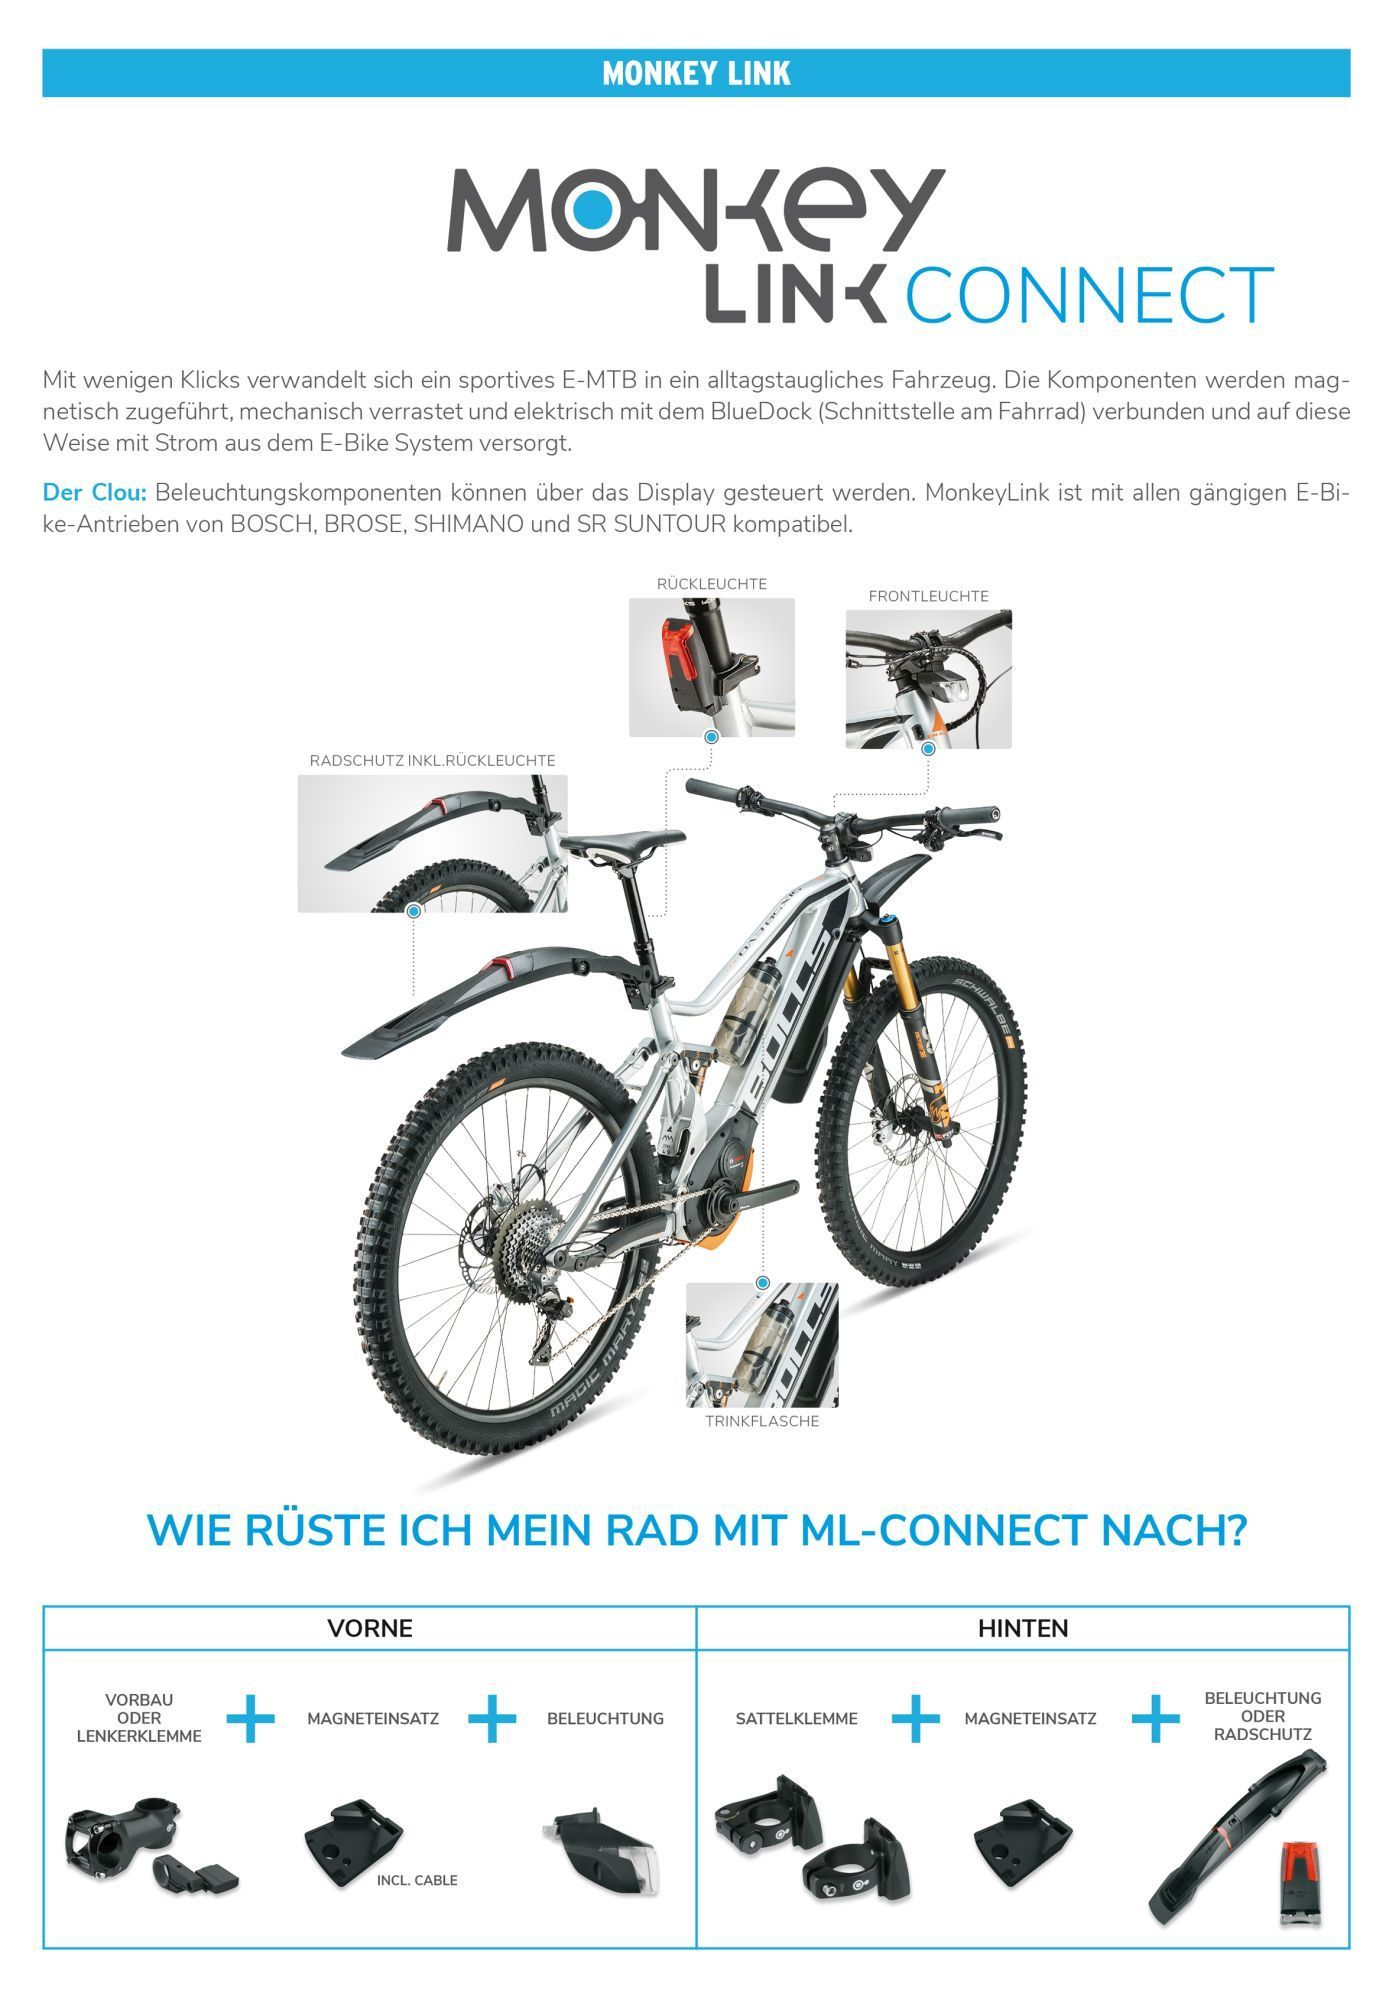 MonkeyLink ML-InterfaceConnect incl.Shimano cable f ML-Sparepart Shimano/Suntour